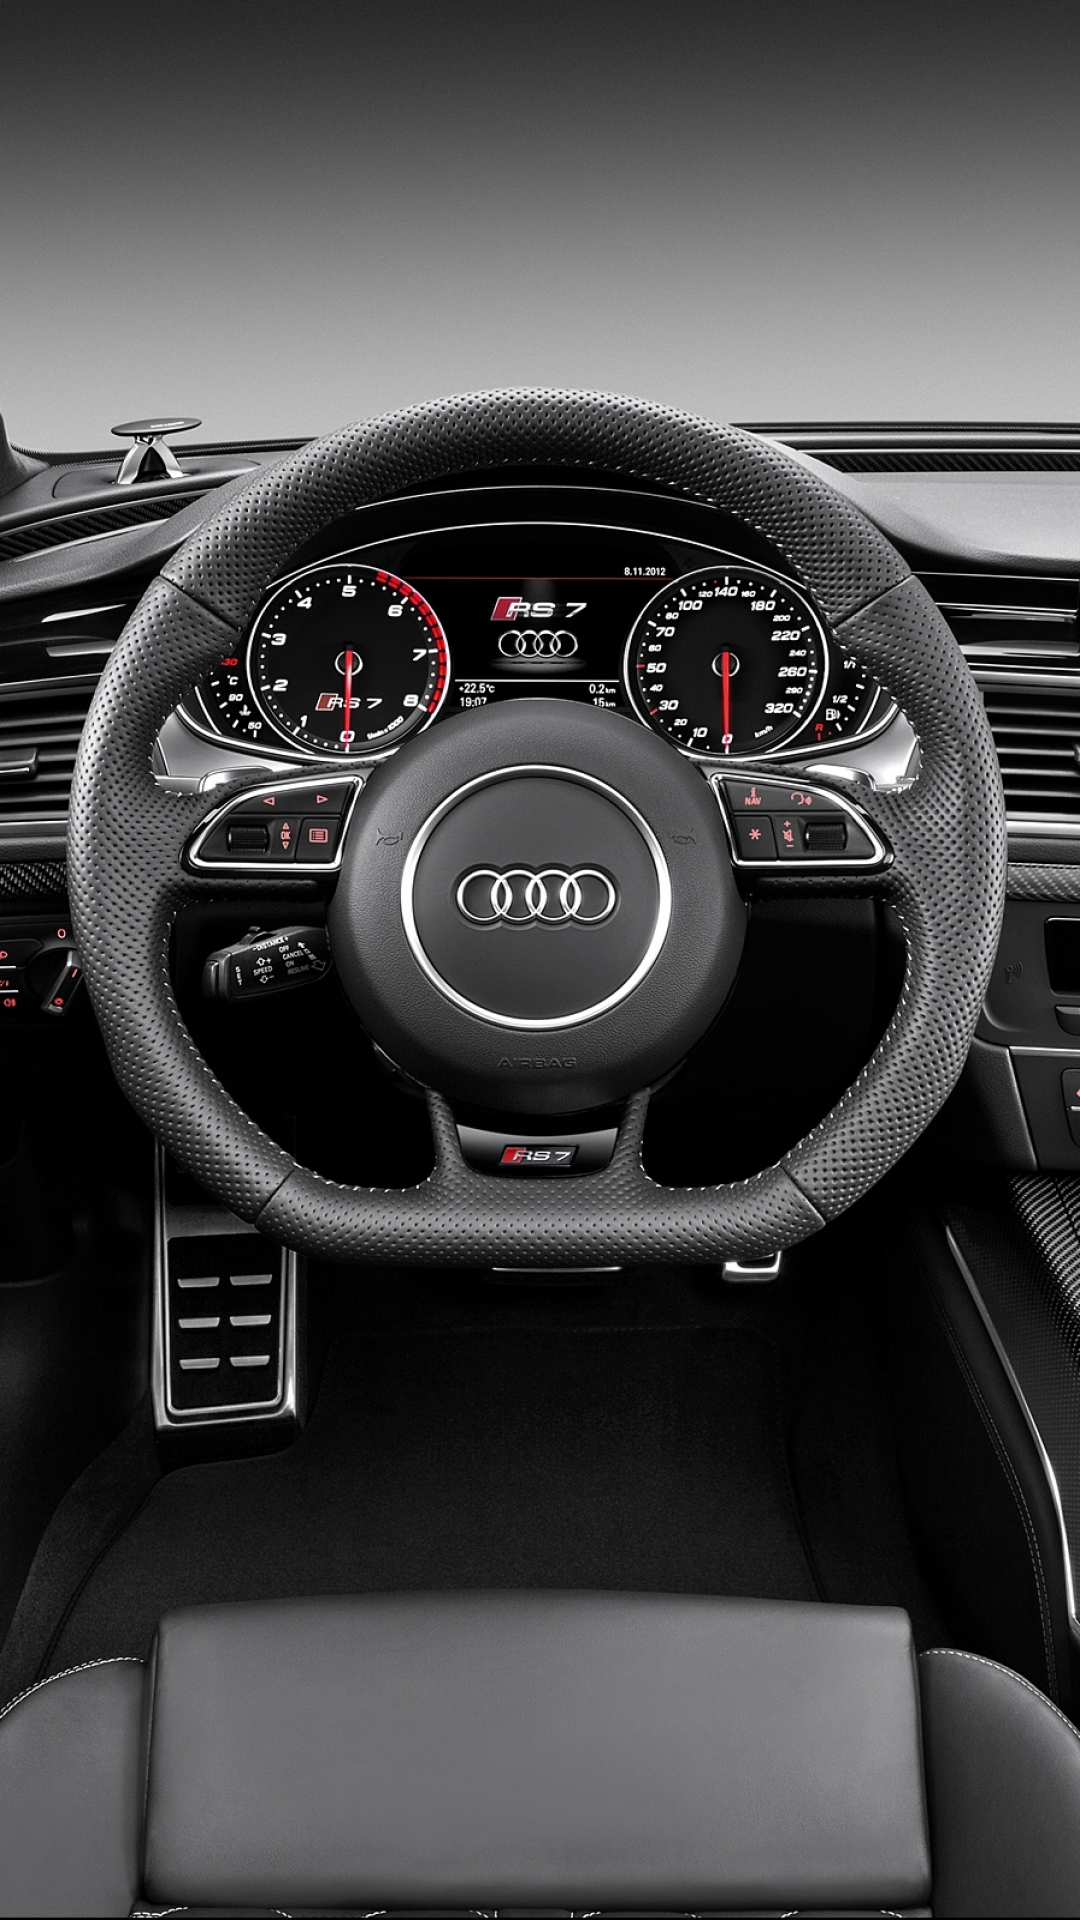 Iphone 7 Plus Vehicles Audi Rs7 Wallpaper Id 545179